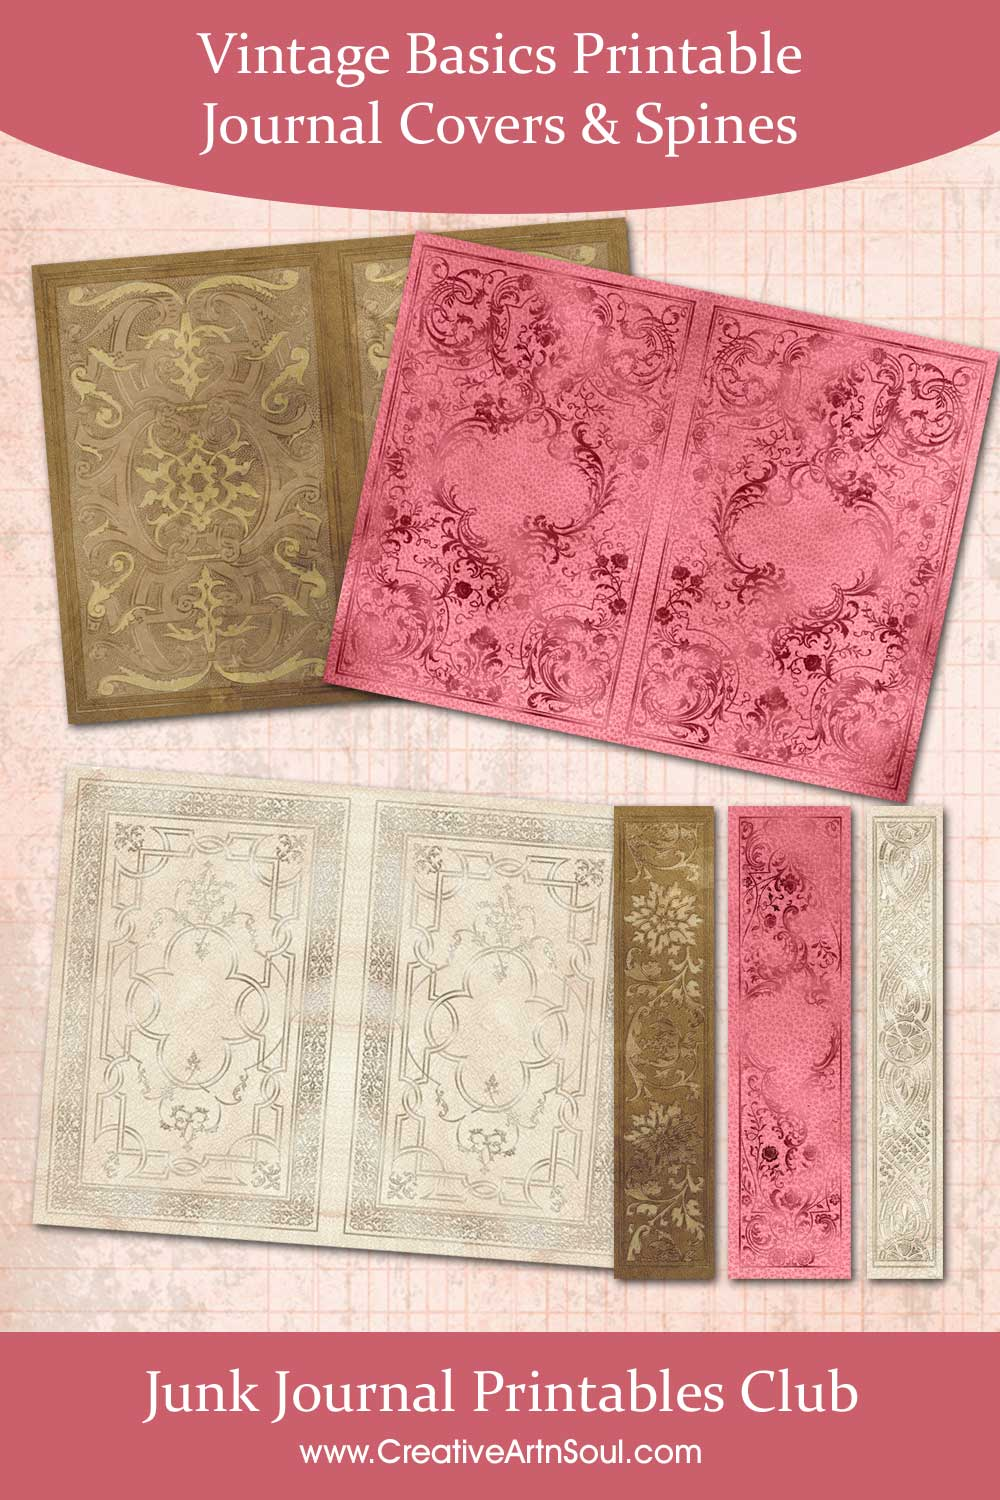 Vintage Basics Printable Journal Covers and Spines